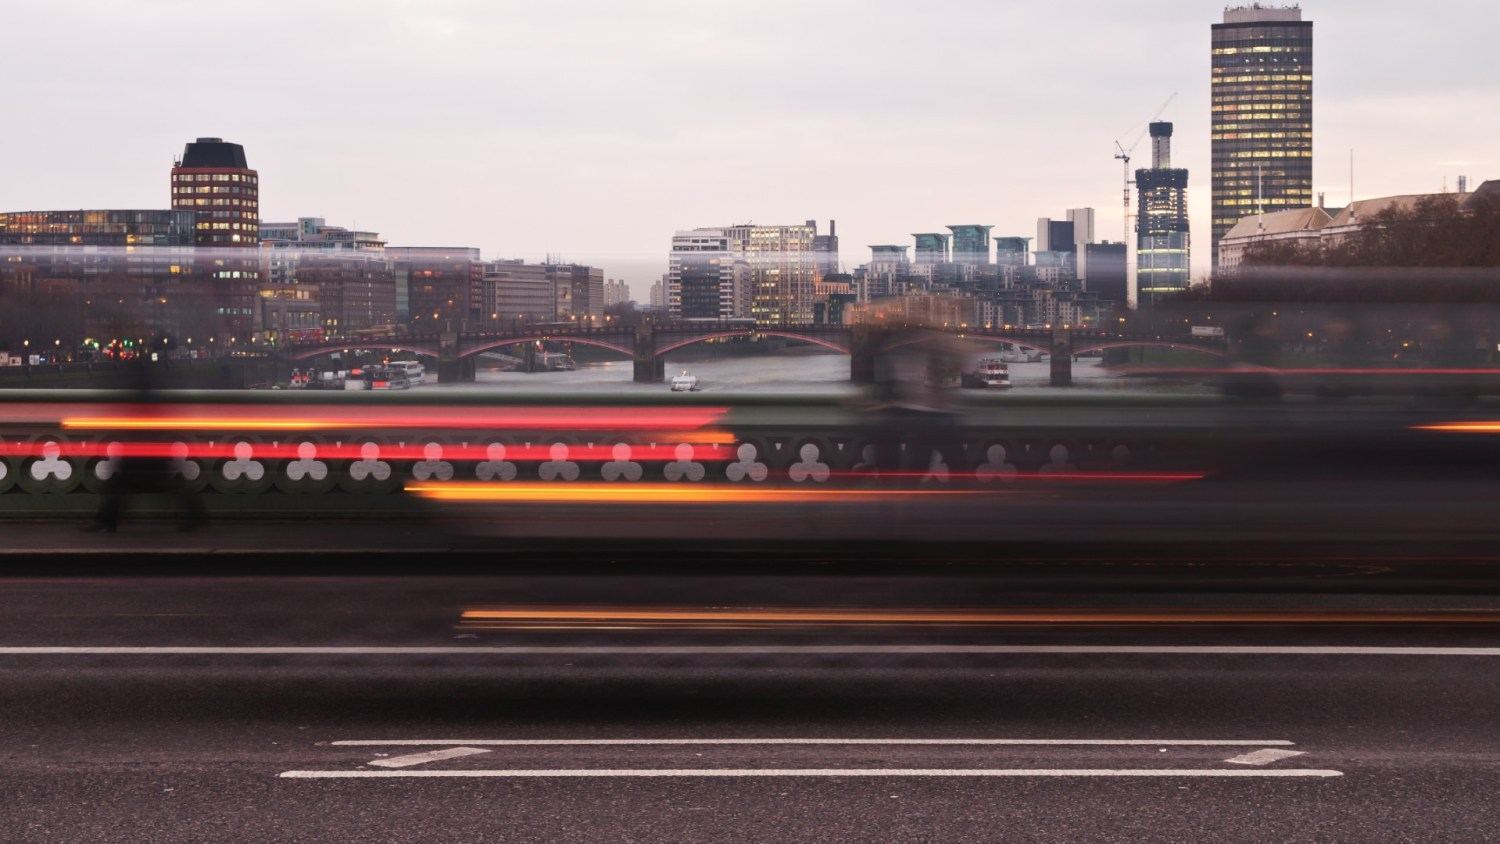 London moving traffic violations are up